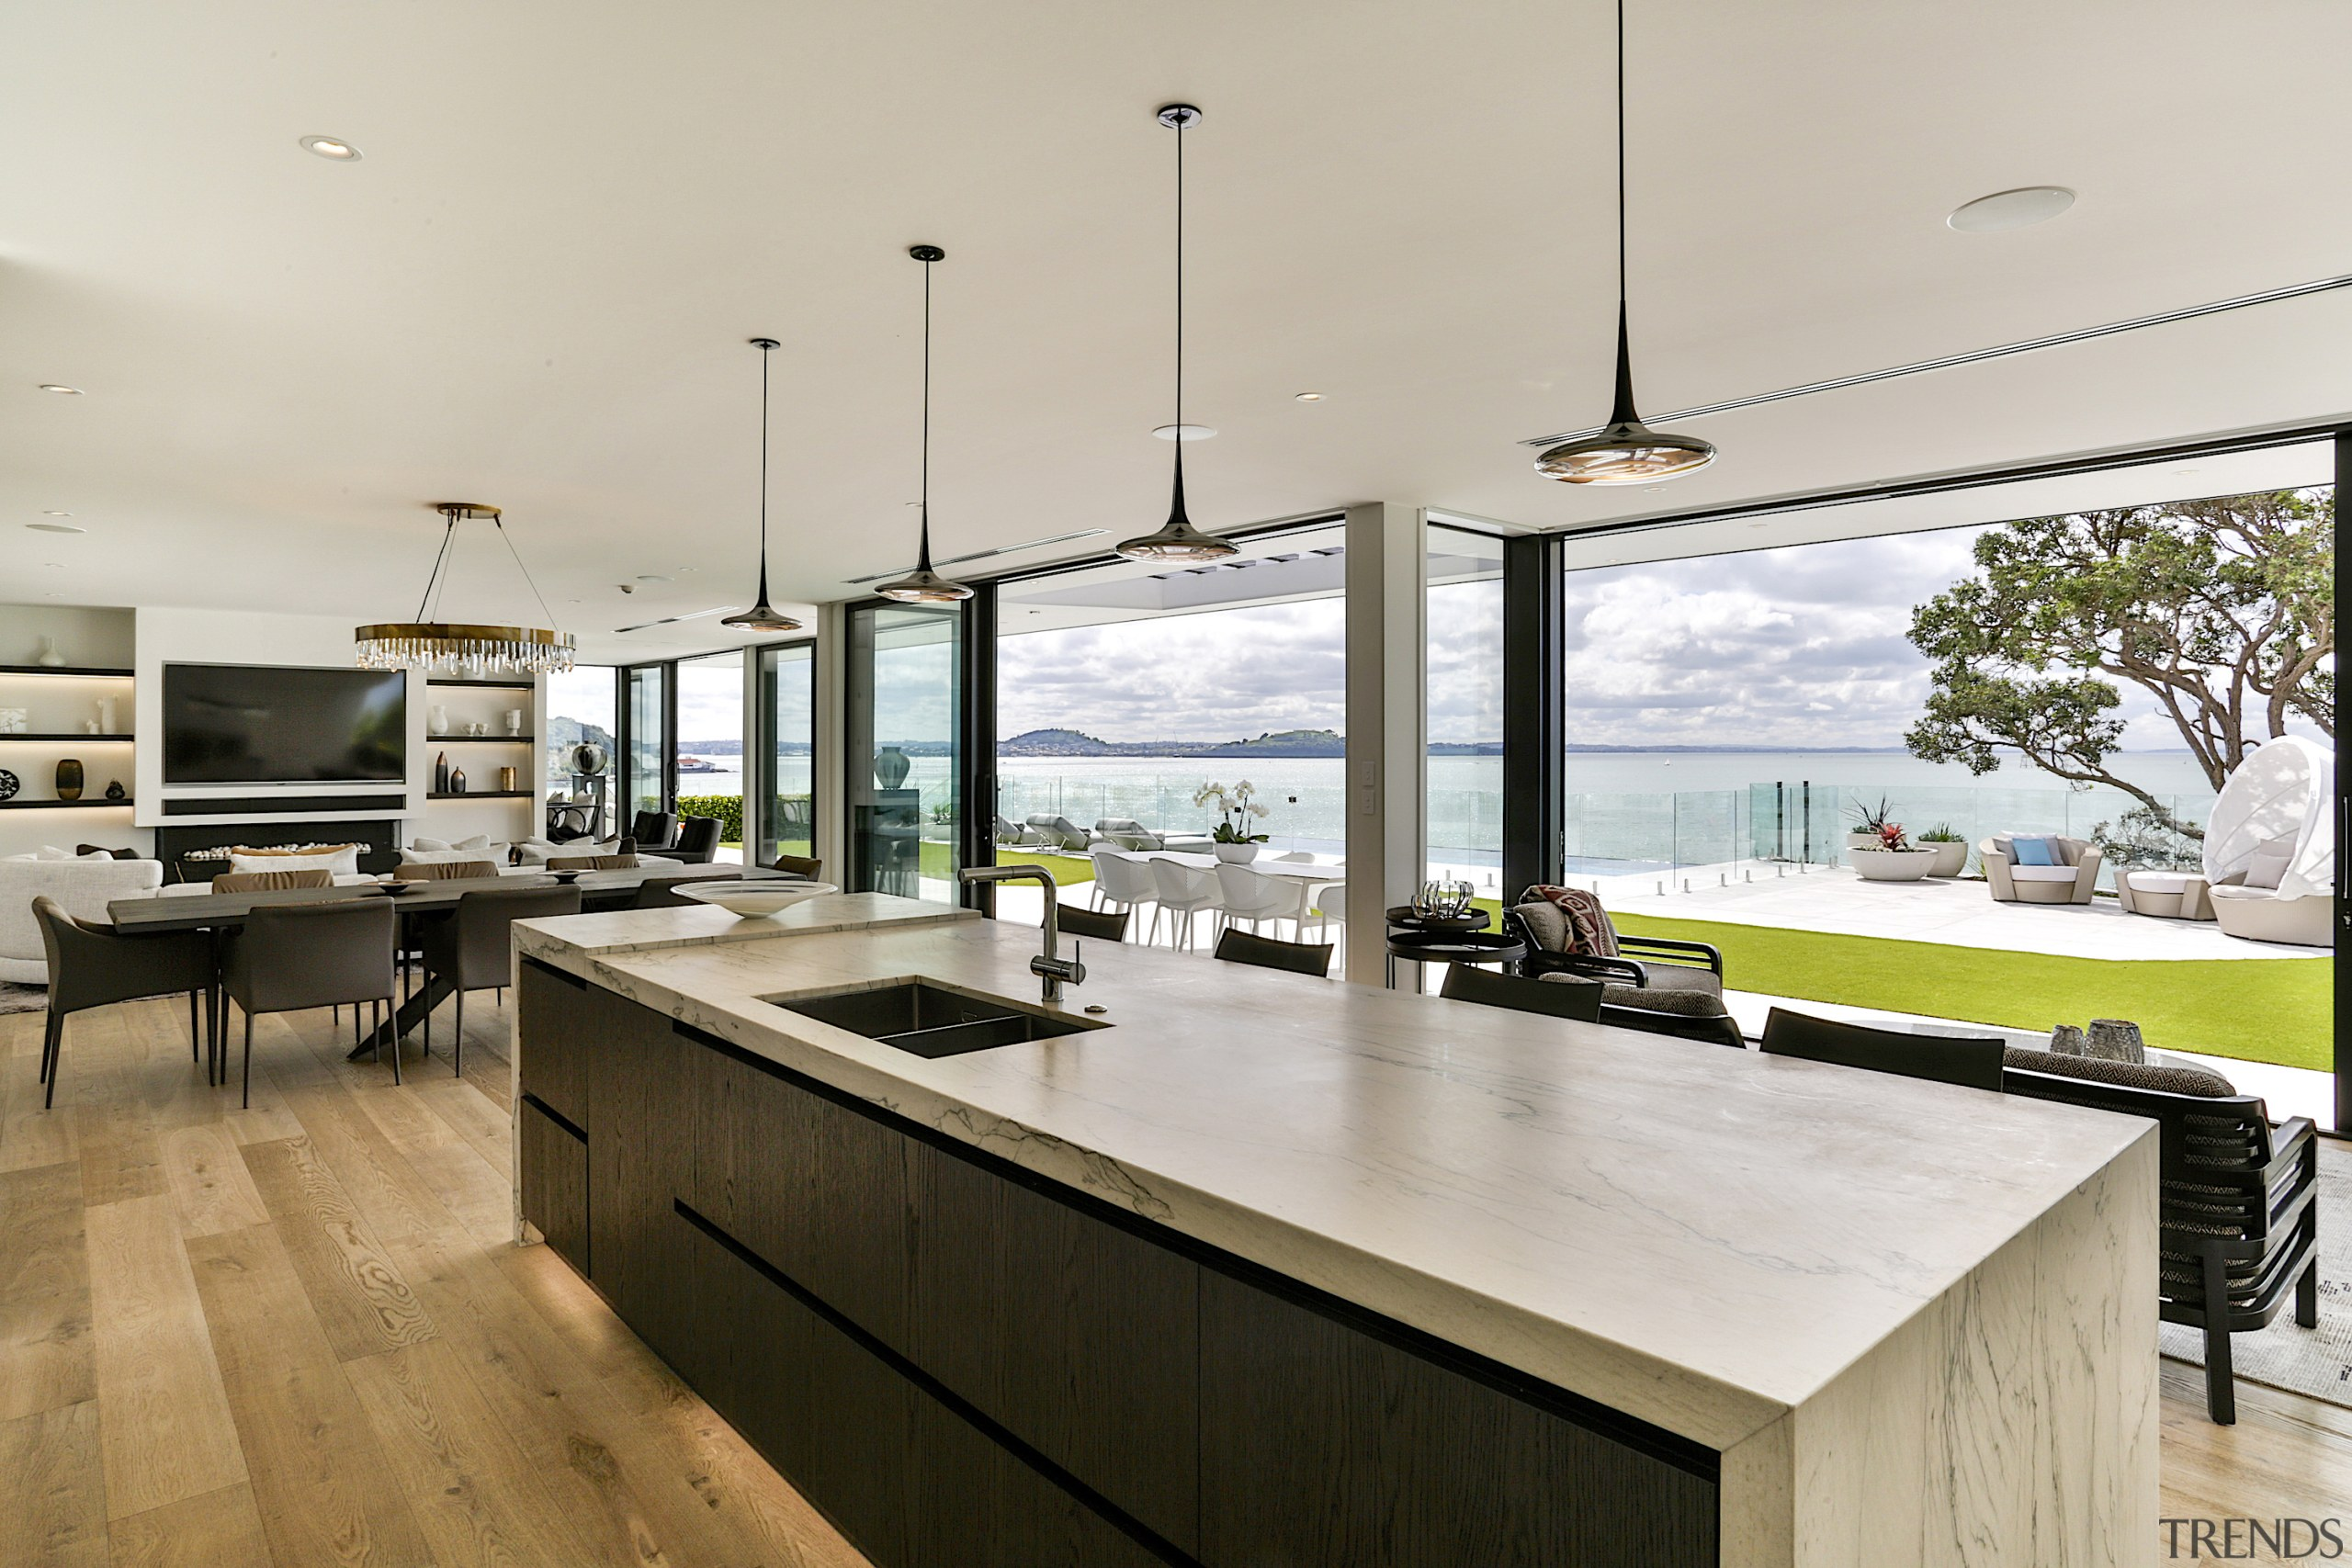 The kitchen Island with a raised waterfall block gray